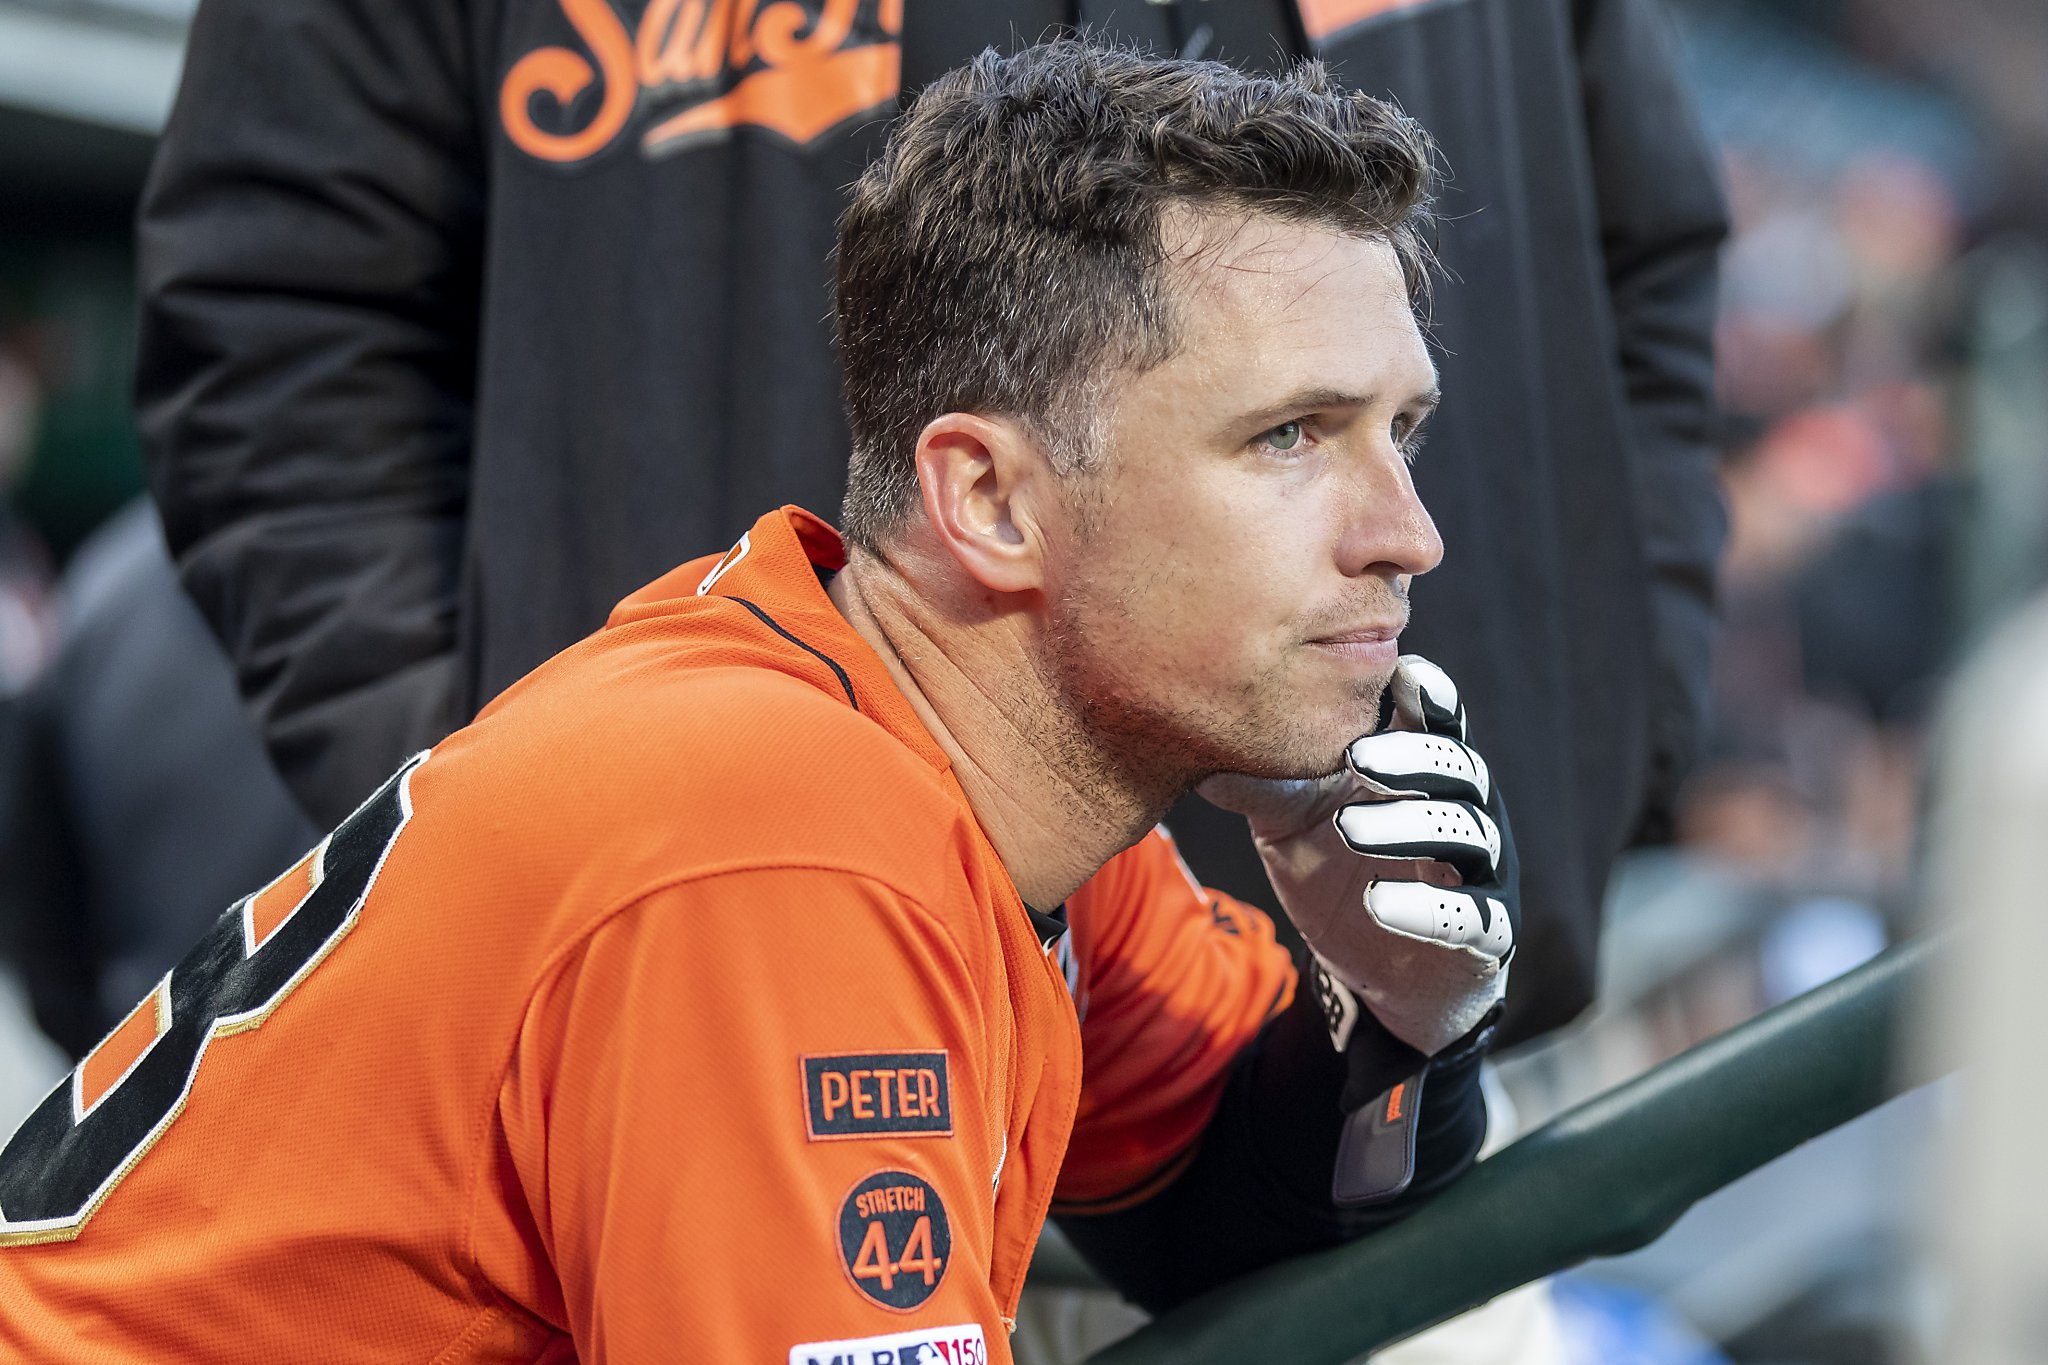 Giants mailbag: Buster Posey's 2021 role and Hall of Fame chances both uncertain